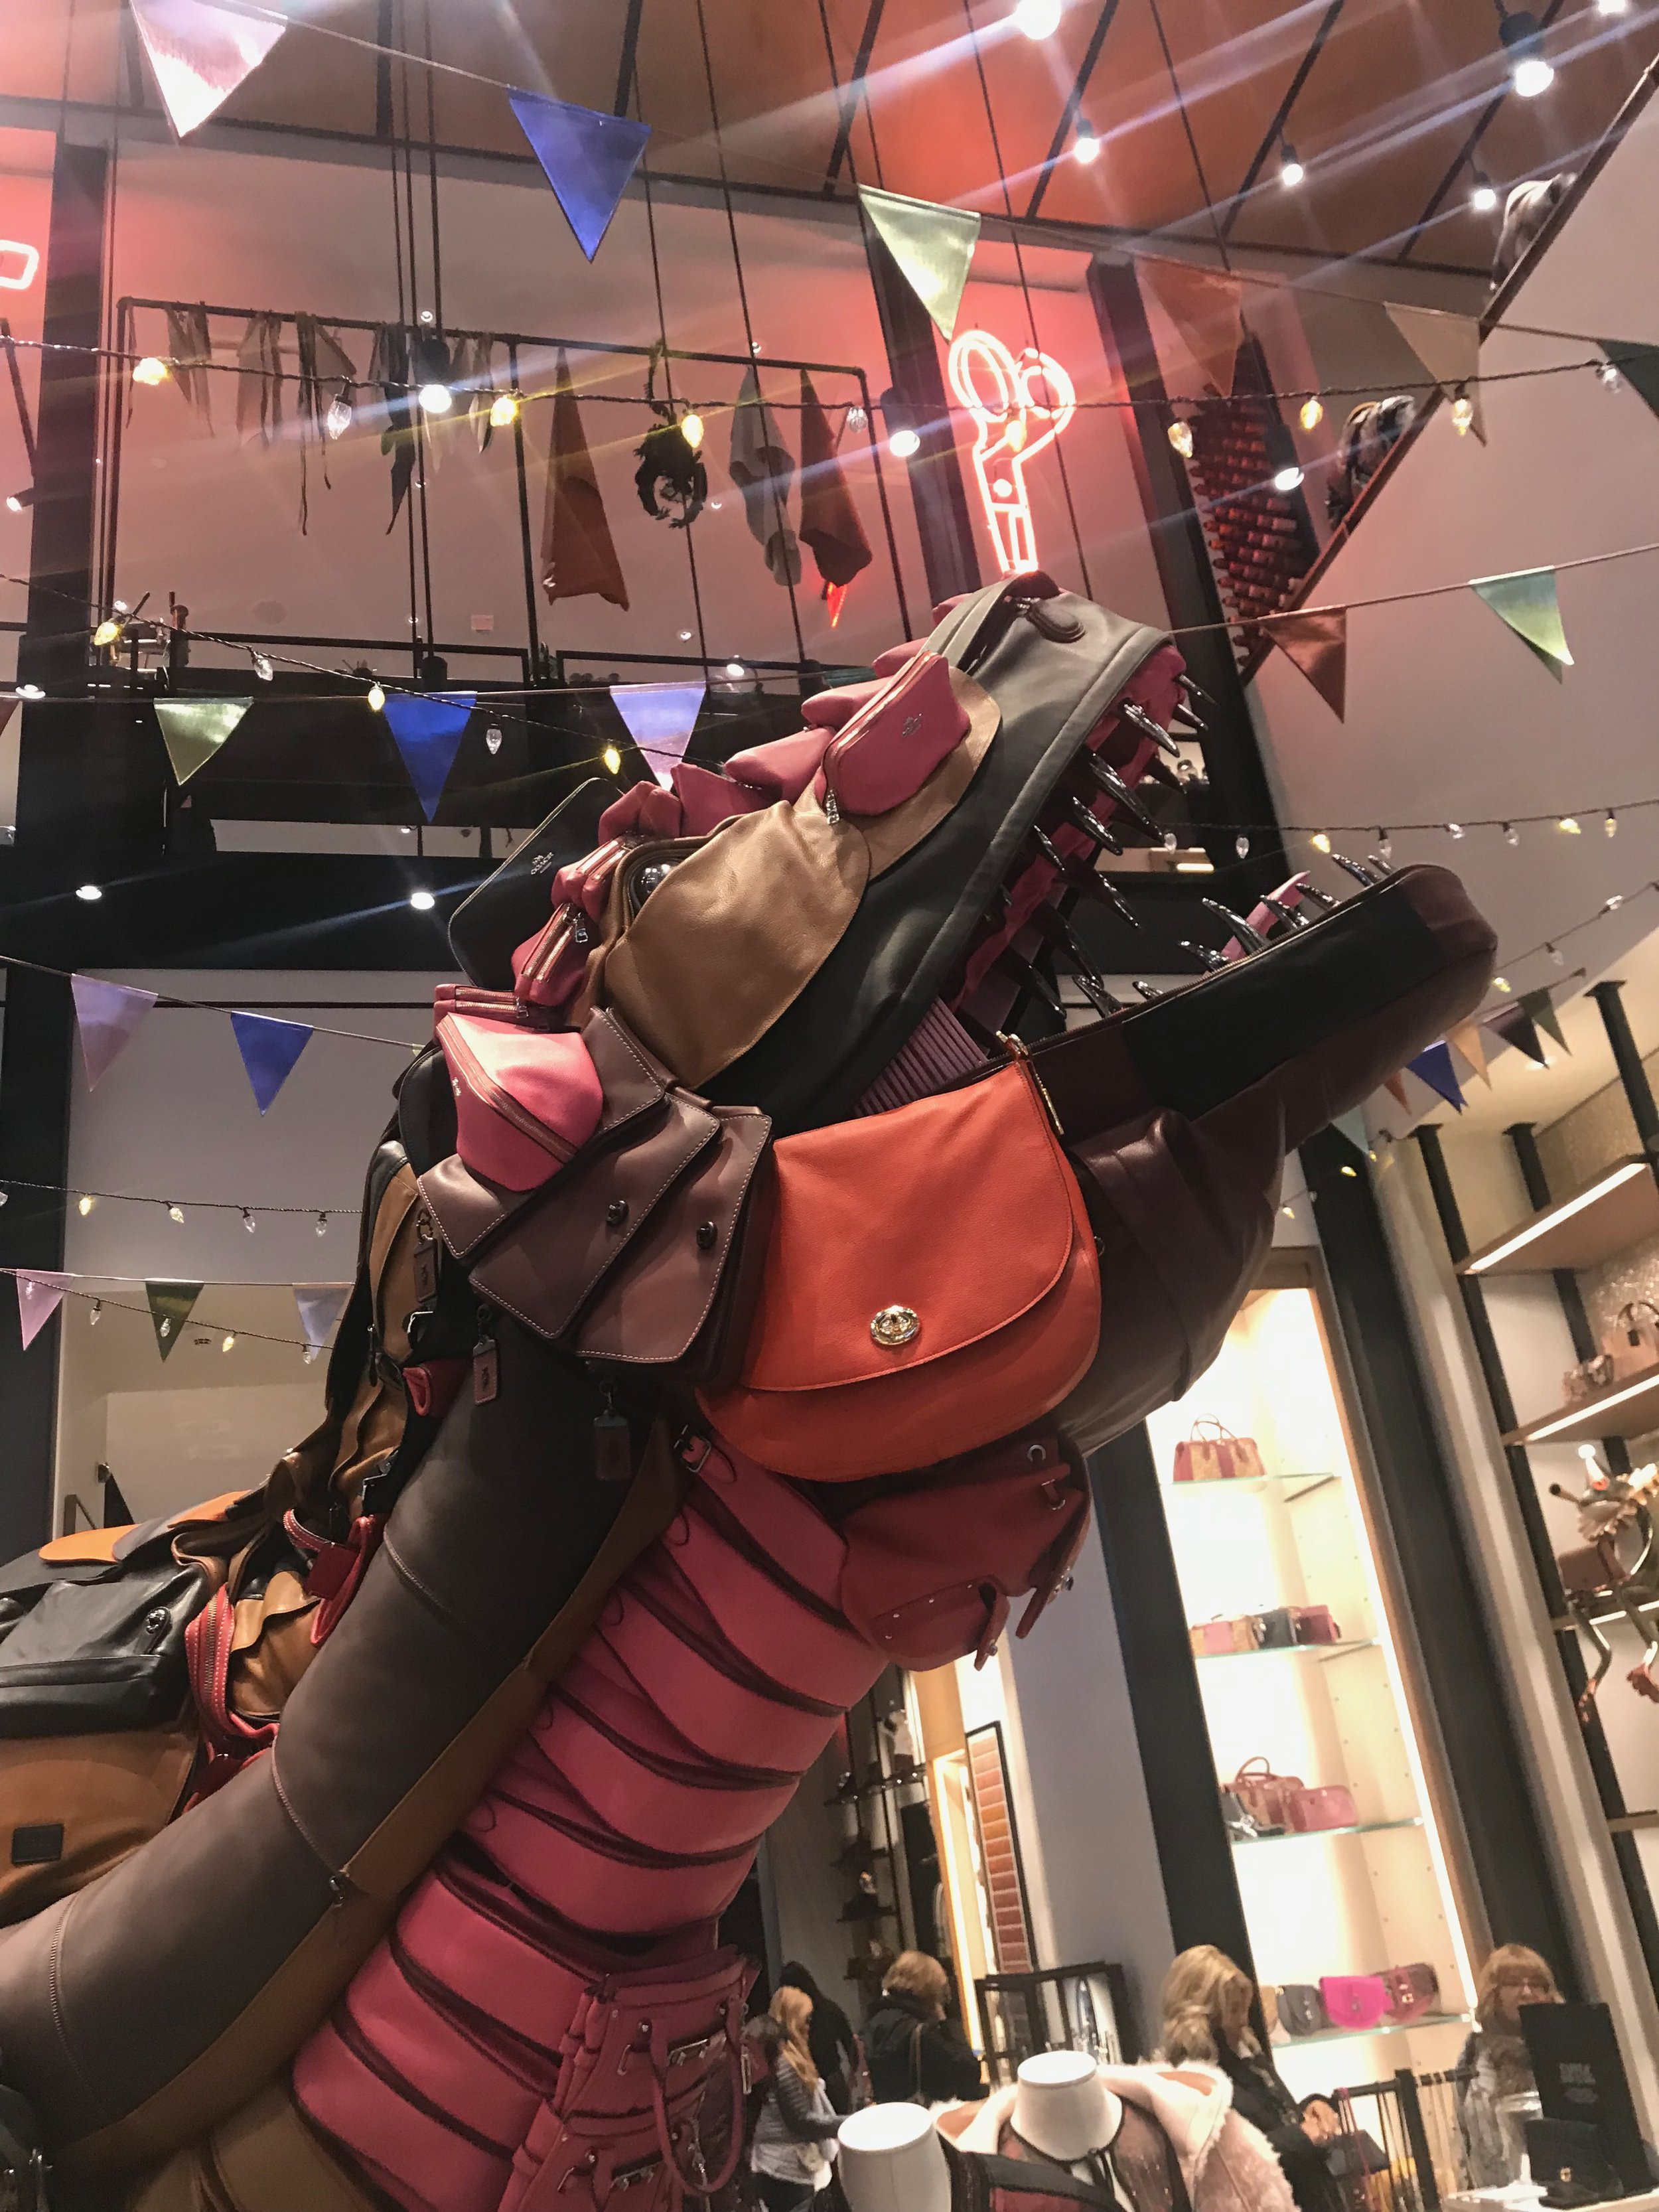 A conveyer belt, in-house workshop and 12-foot dinosaur, Rexy, surprises and delights visitors at COACH'S Fifth Avenue flagship.